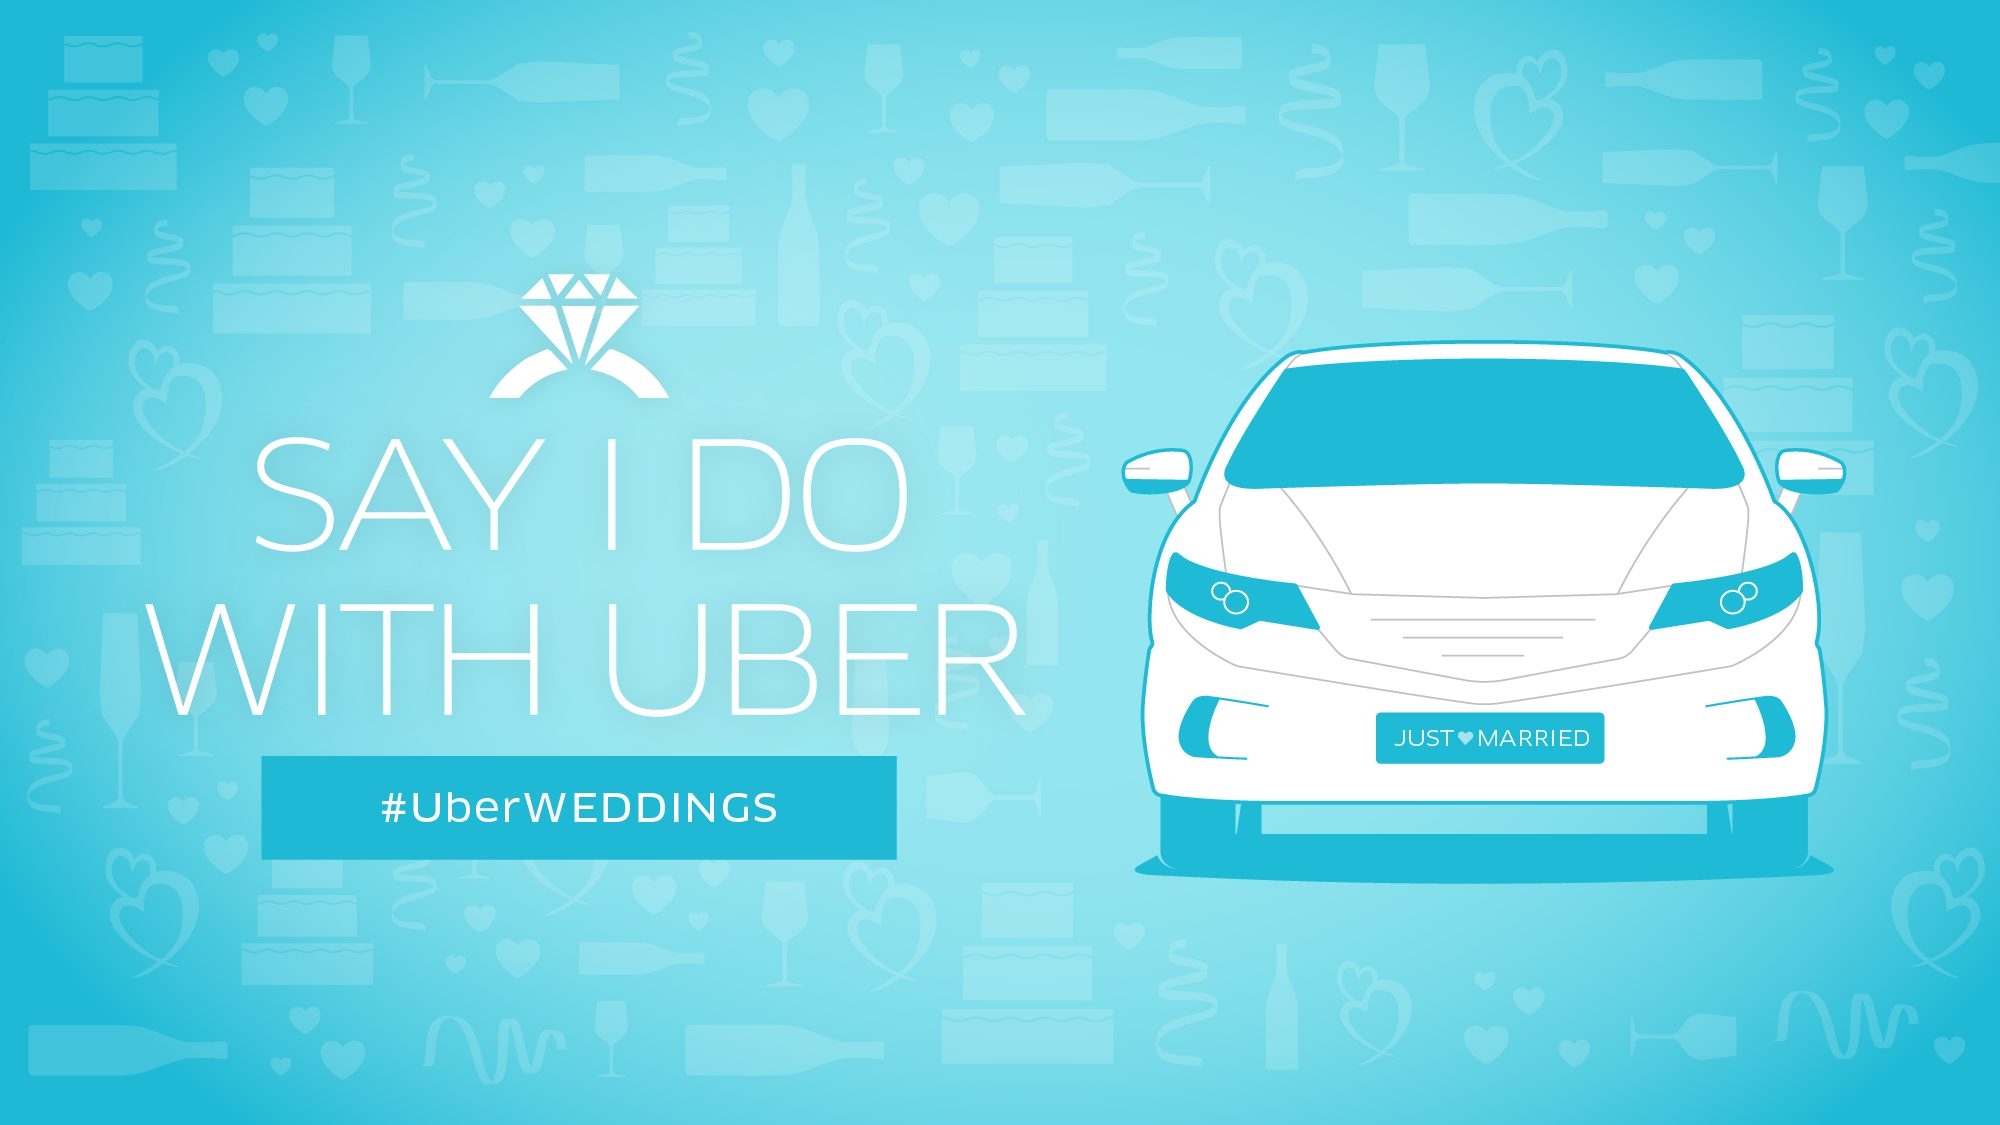 UberWeddings launched in India with Unique and Customizable Promotional Codes: Check Out the Details